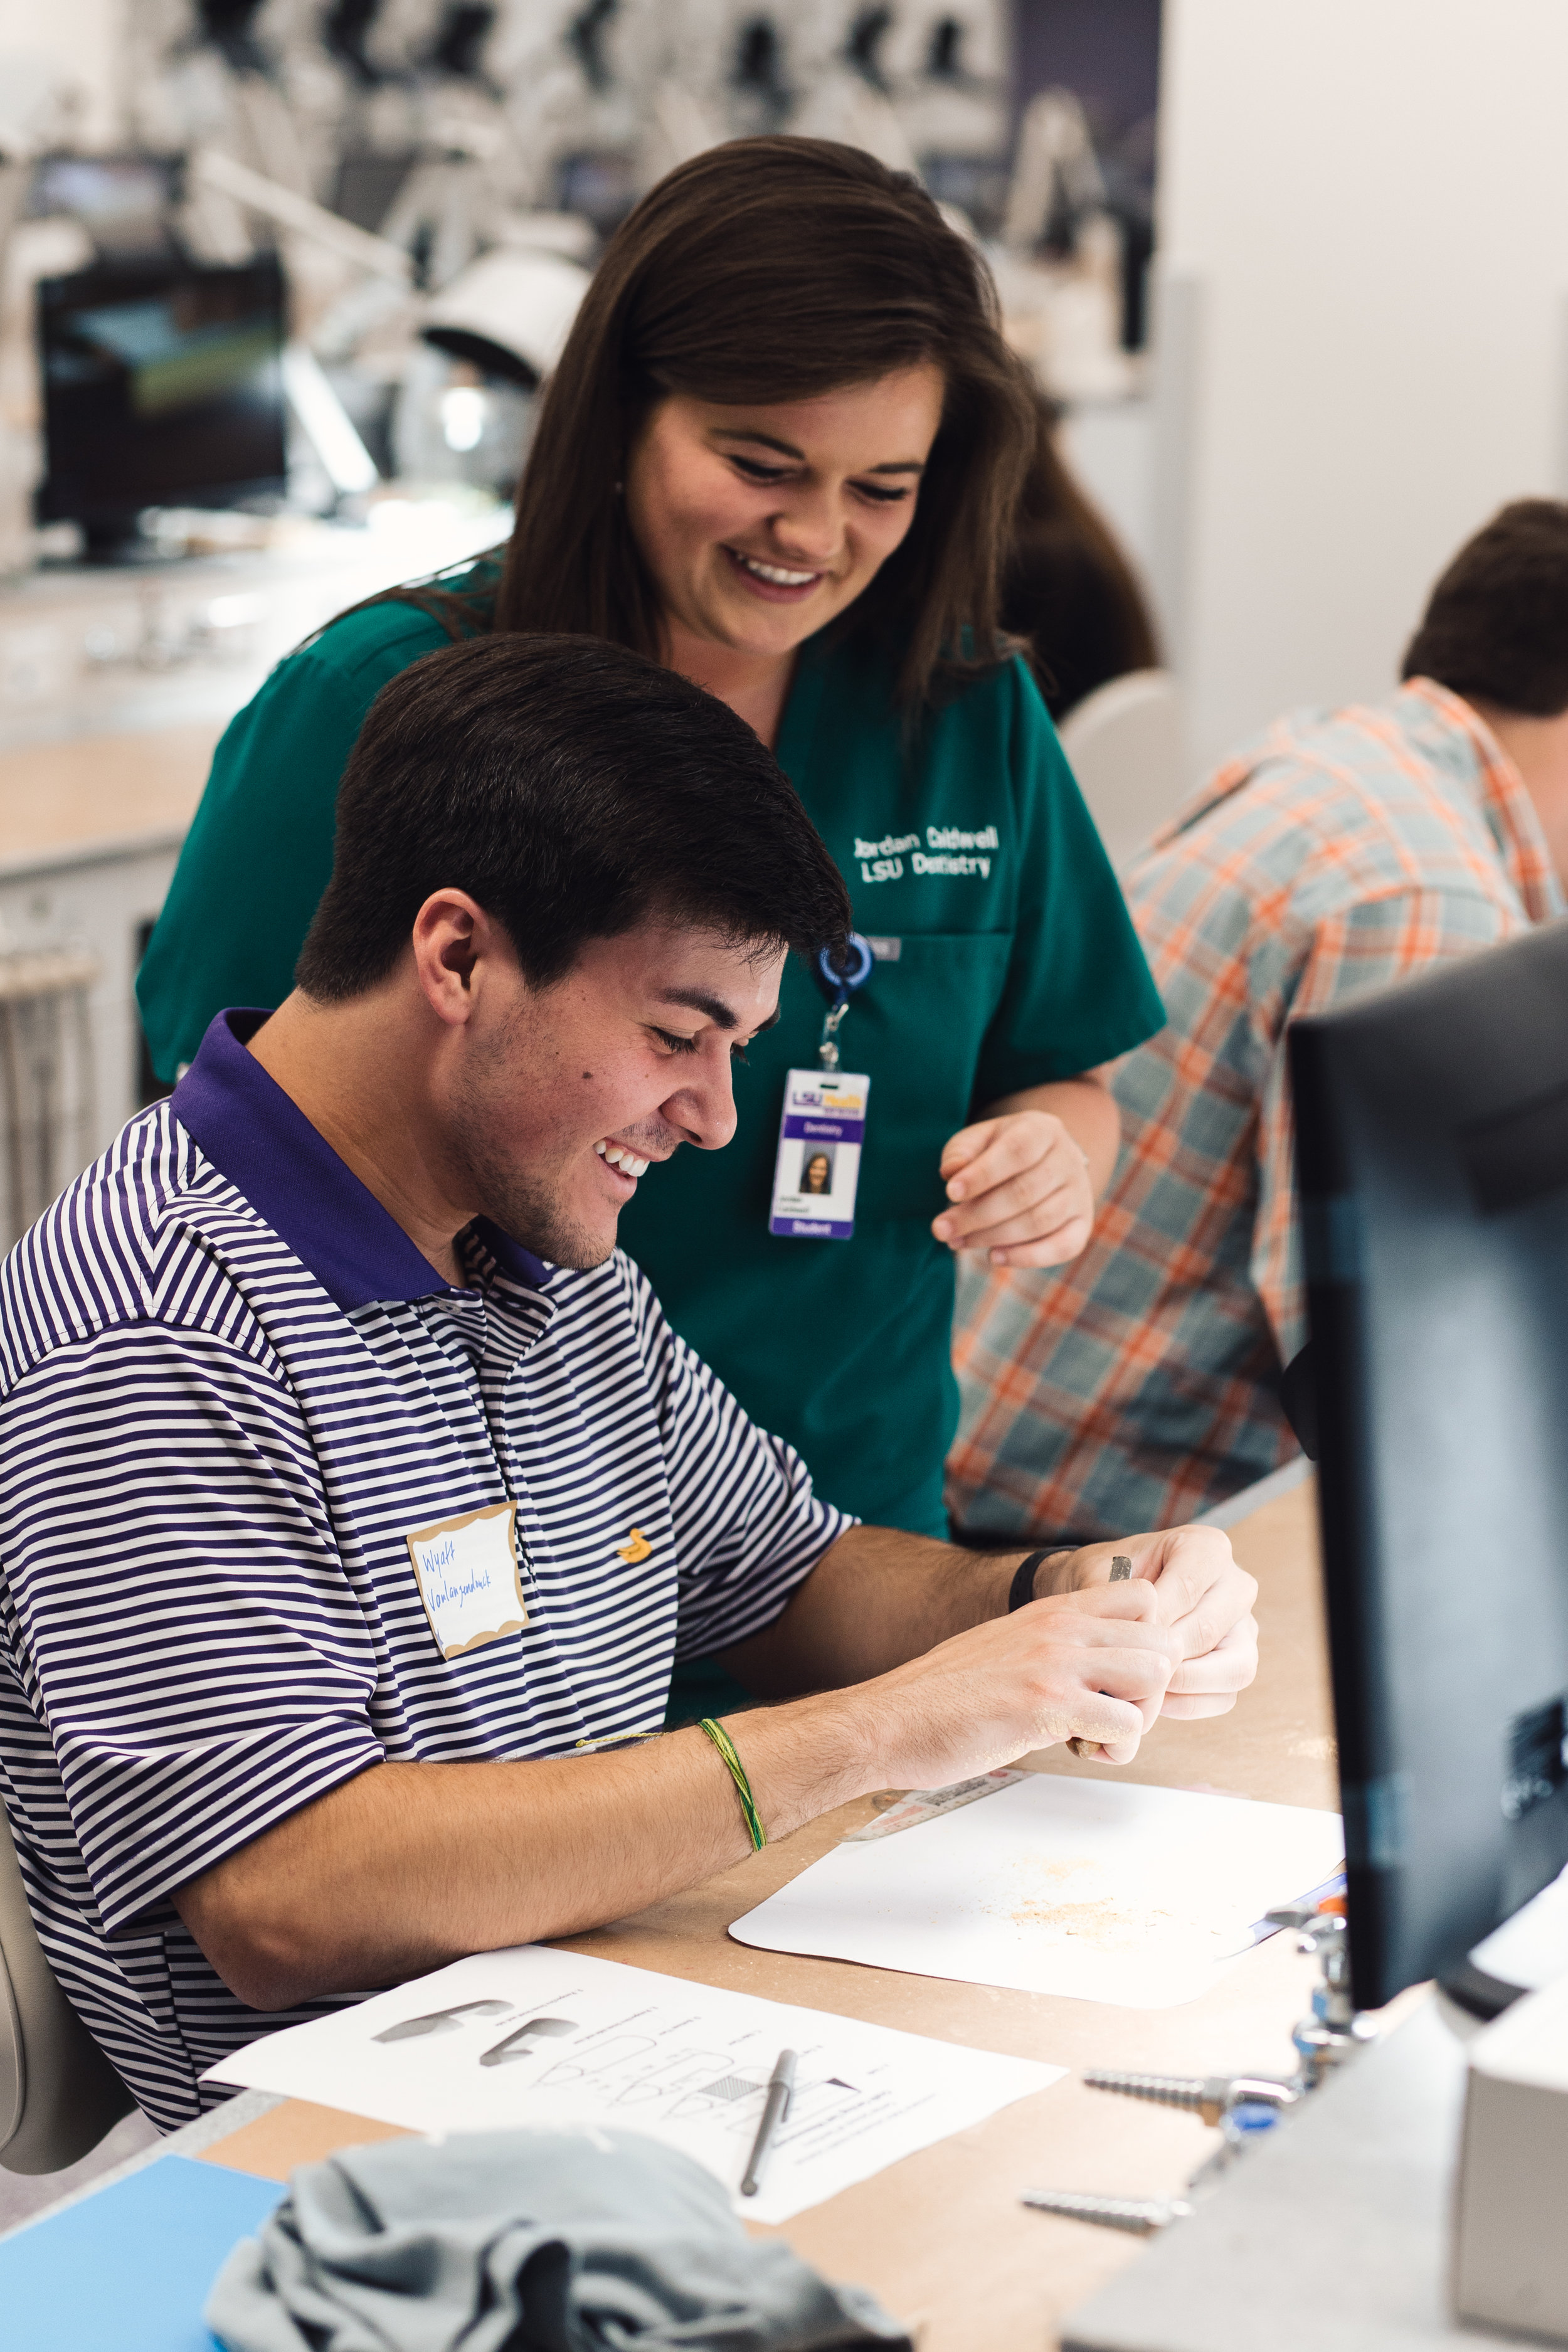 OUR MISSION - The LSU chapter of the American Student Dental Association aims to assist students pursuing careers in dentistry. With a history in providing its members with only the best opportunities in gaining experience and exposure in the dental field, LSU ASDA is well-recognized nationally by dental professionals, dental schools and their boards of admission. Determined in helping members and colleagues, the LSU ASDA officers team is on a mission of bringing the best experience that will hopefully make a positive impact on your journey during dental school.